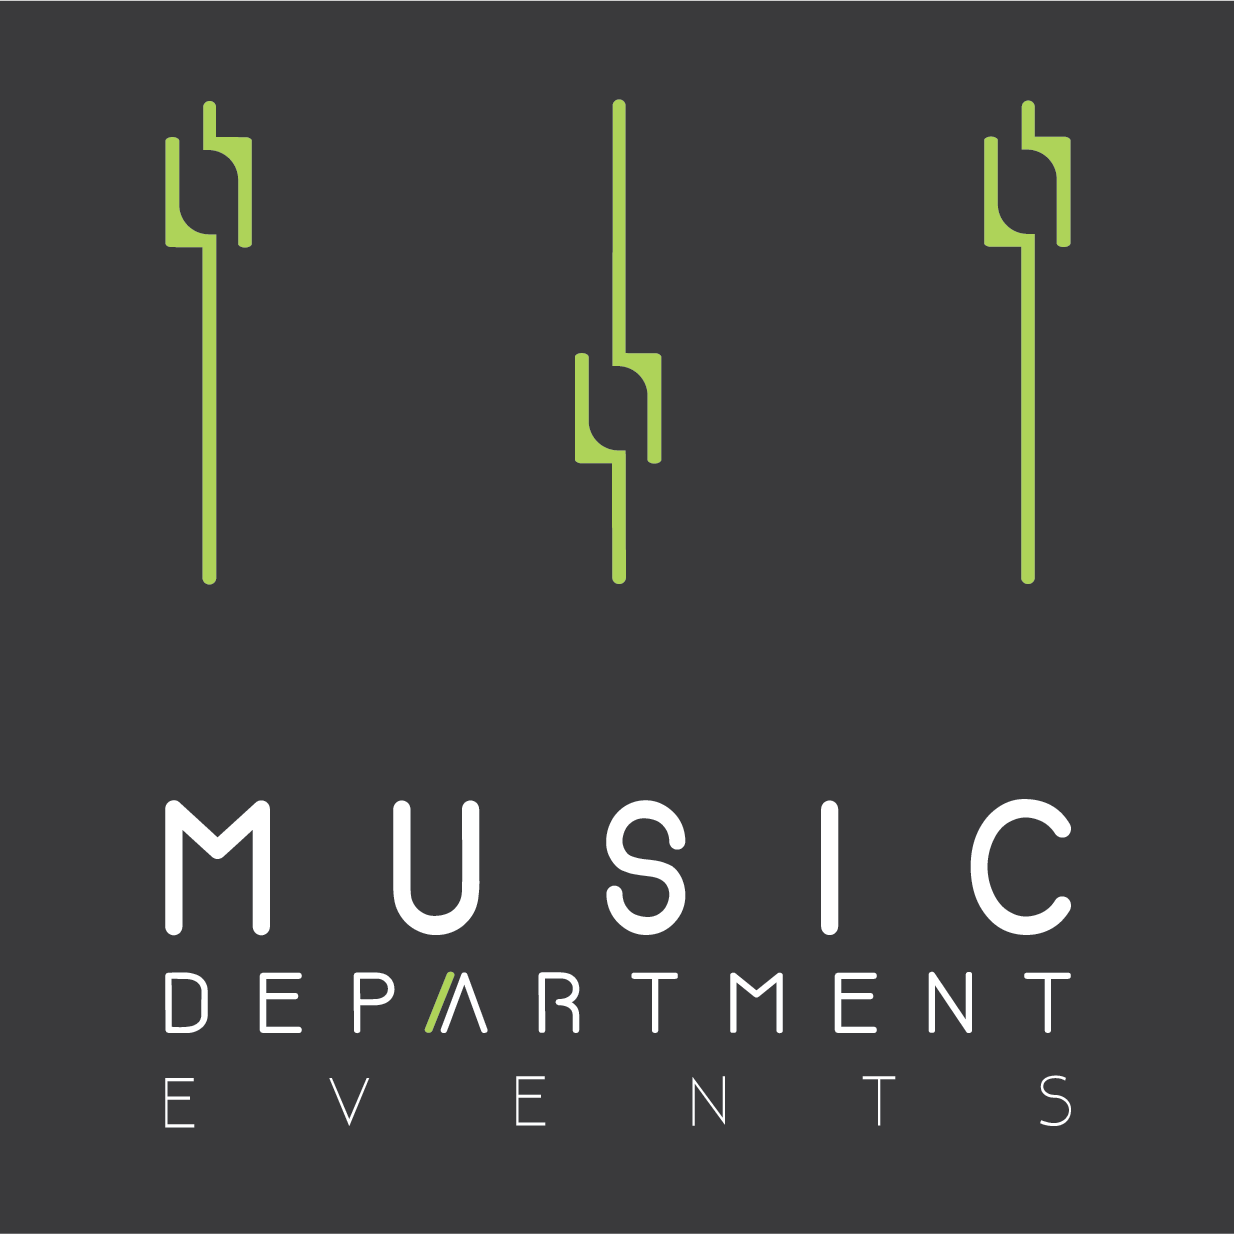 MUSIC DEPARTMENT EVENTS